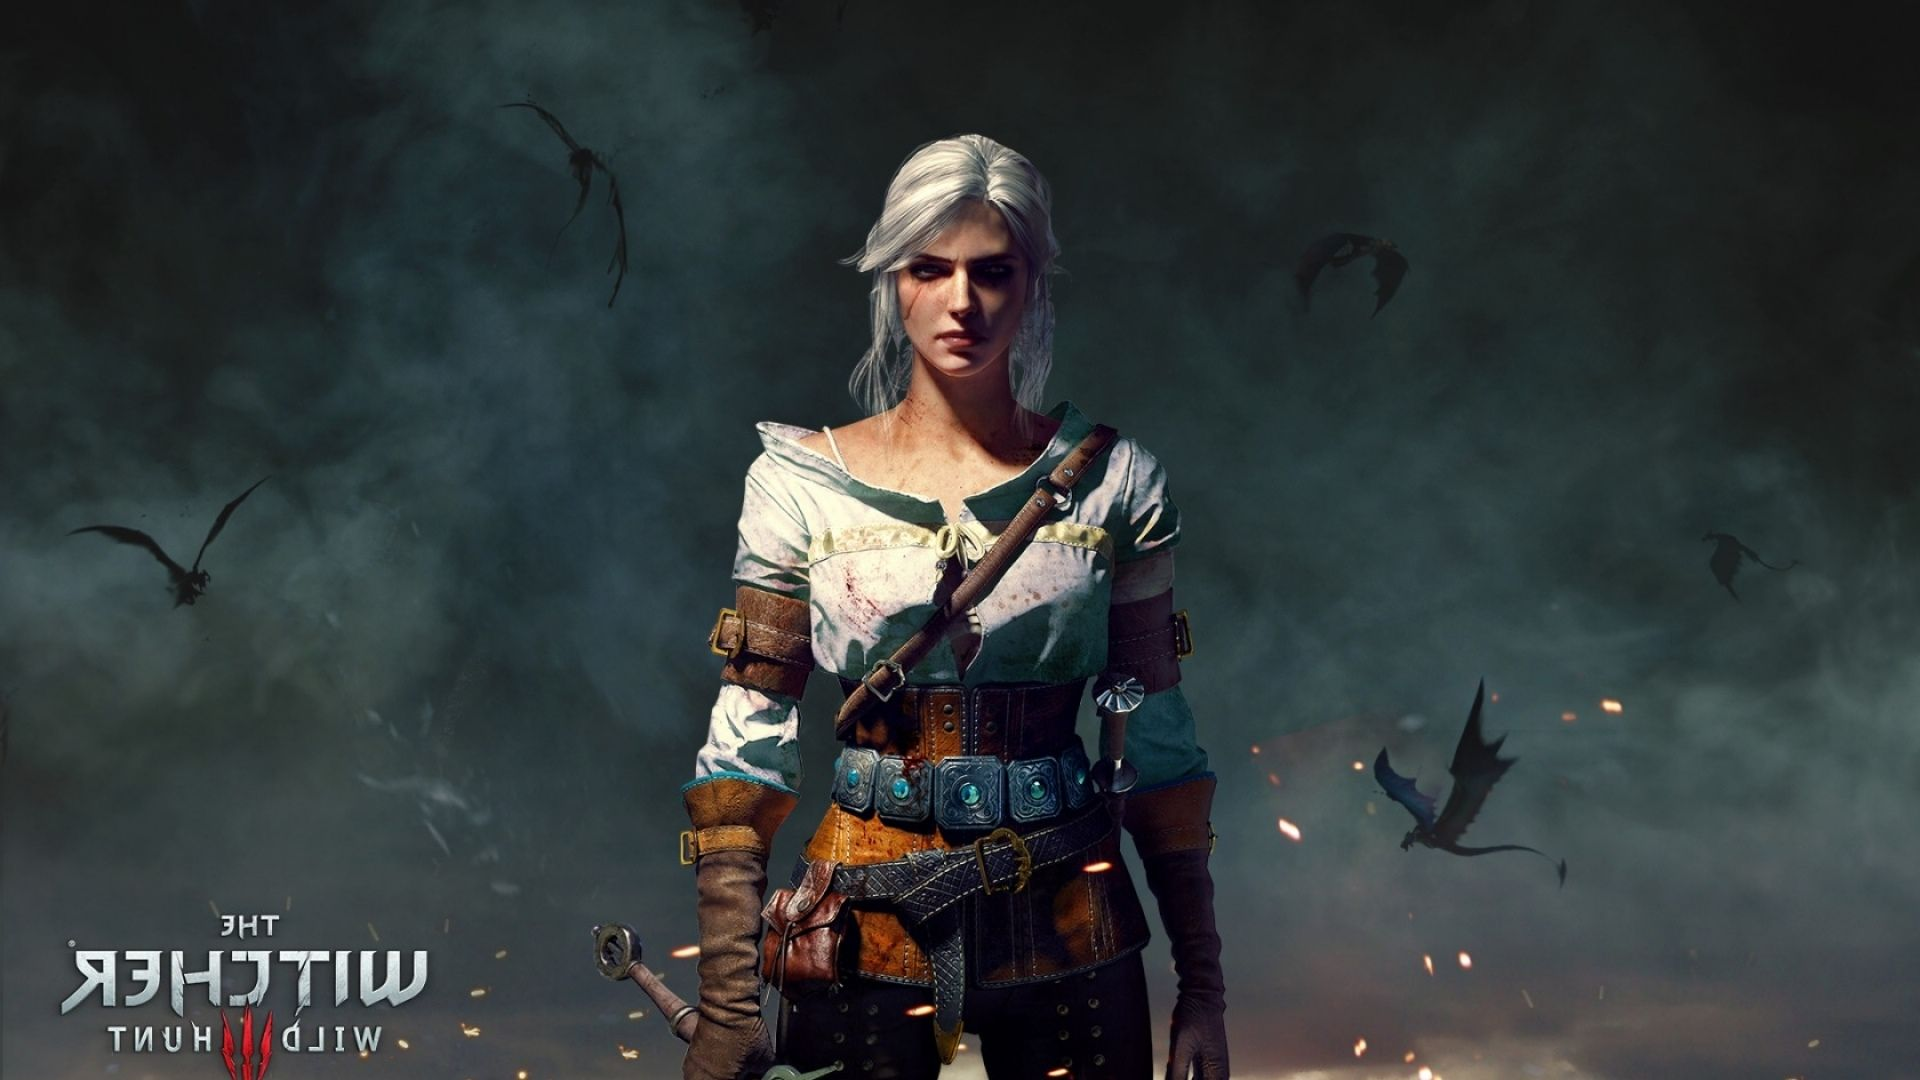 The Witcher Ciri, Pic